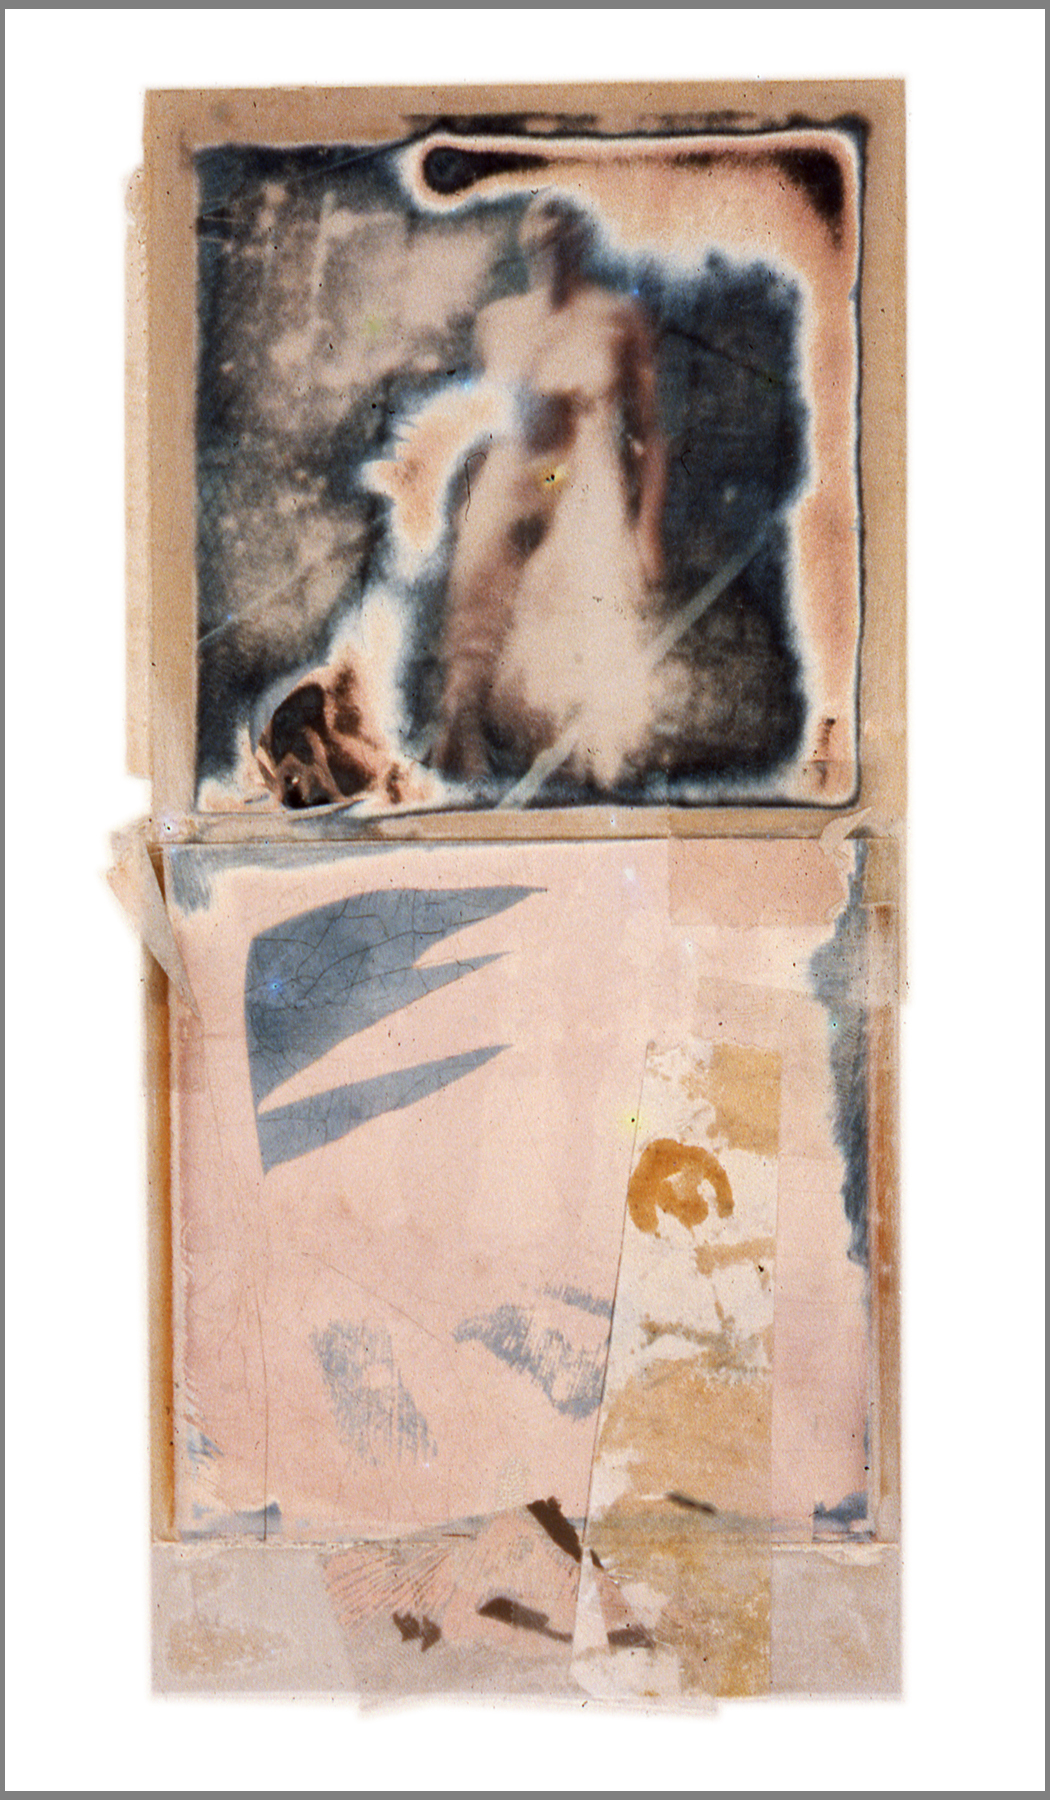 1977  Polaroid SX70 film and mixed media, 7x3.5""